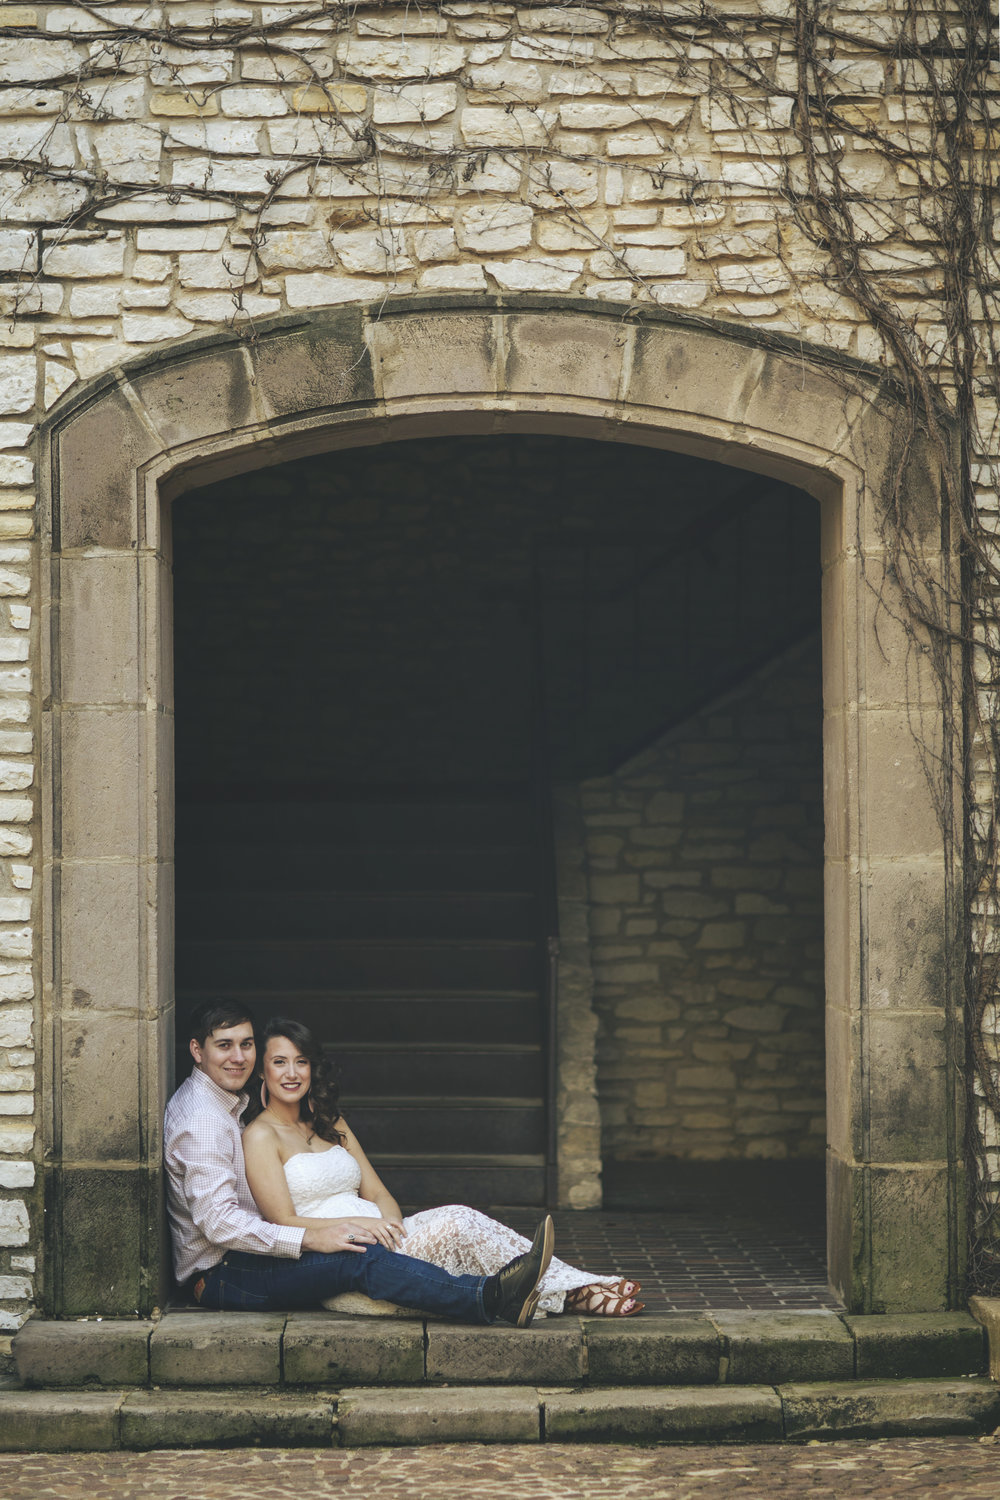 Janders and Collins Engagement Session | Las Colinas, TX